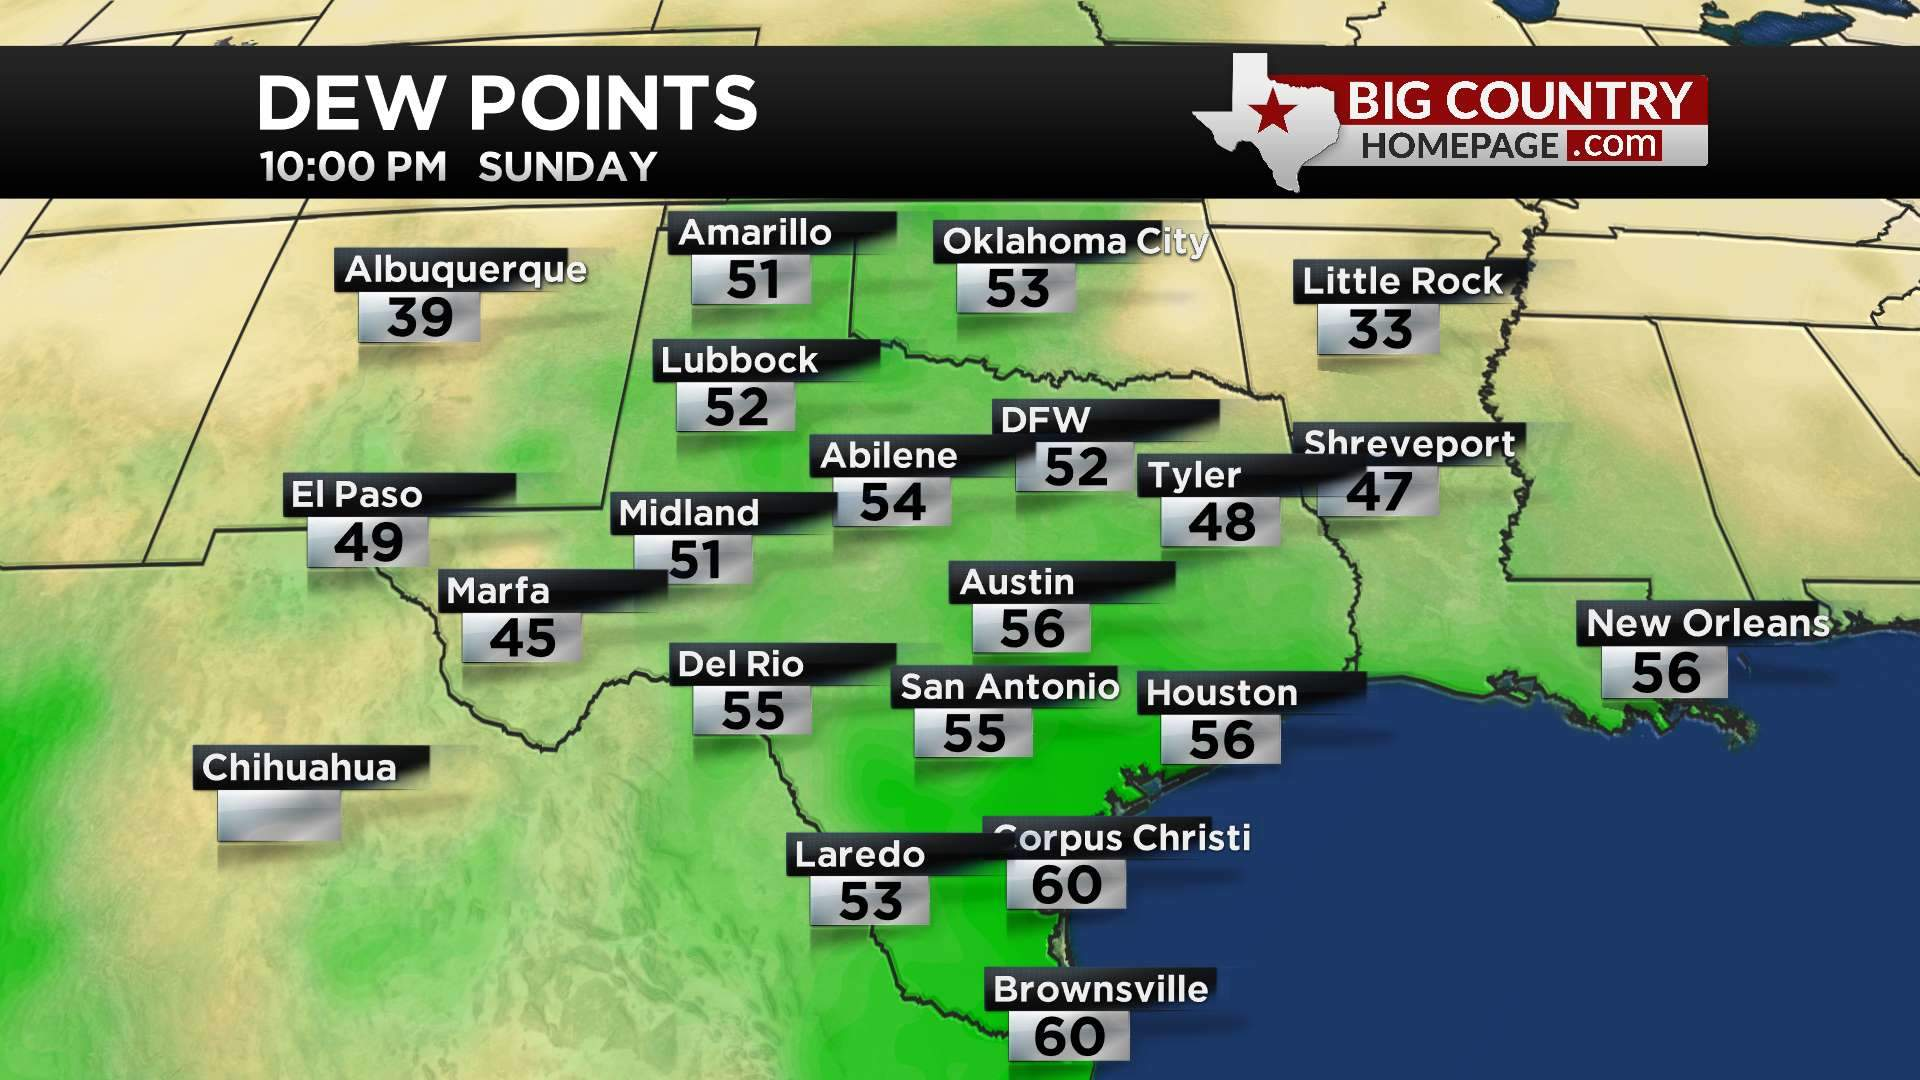 Texas Dewpoints